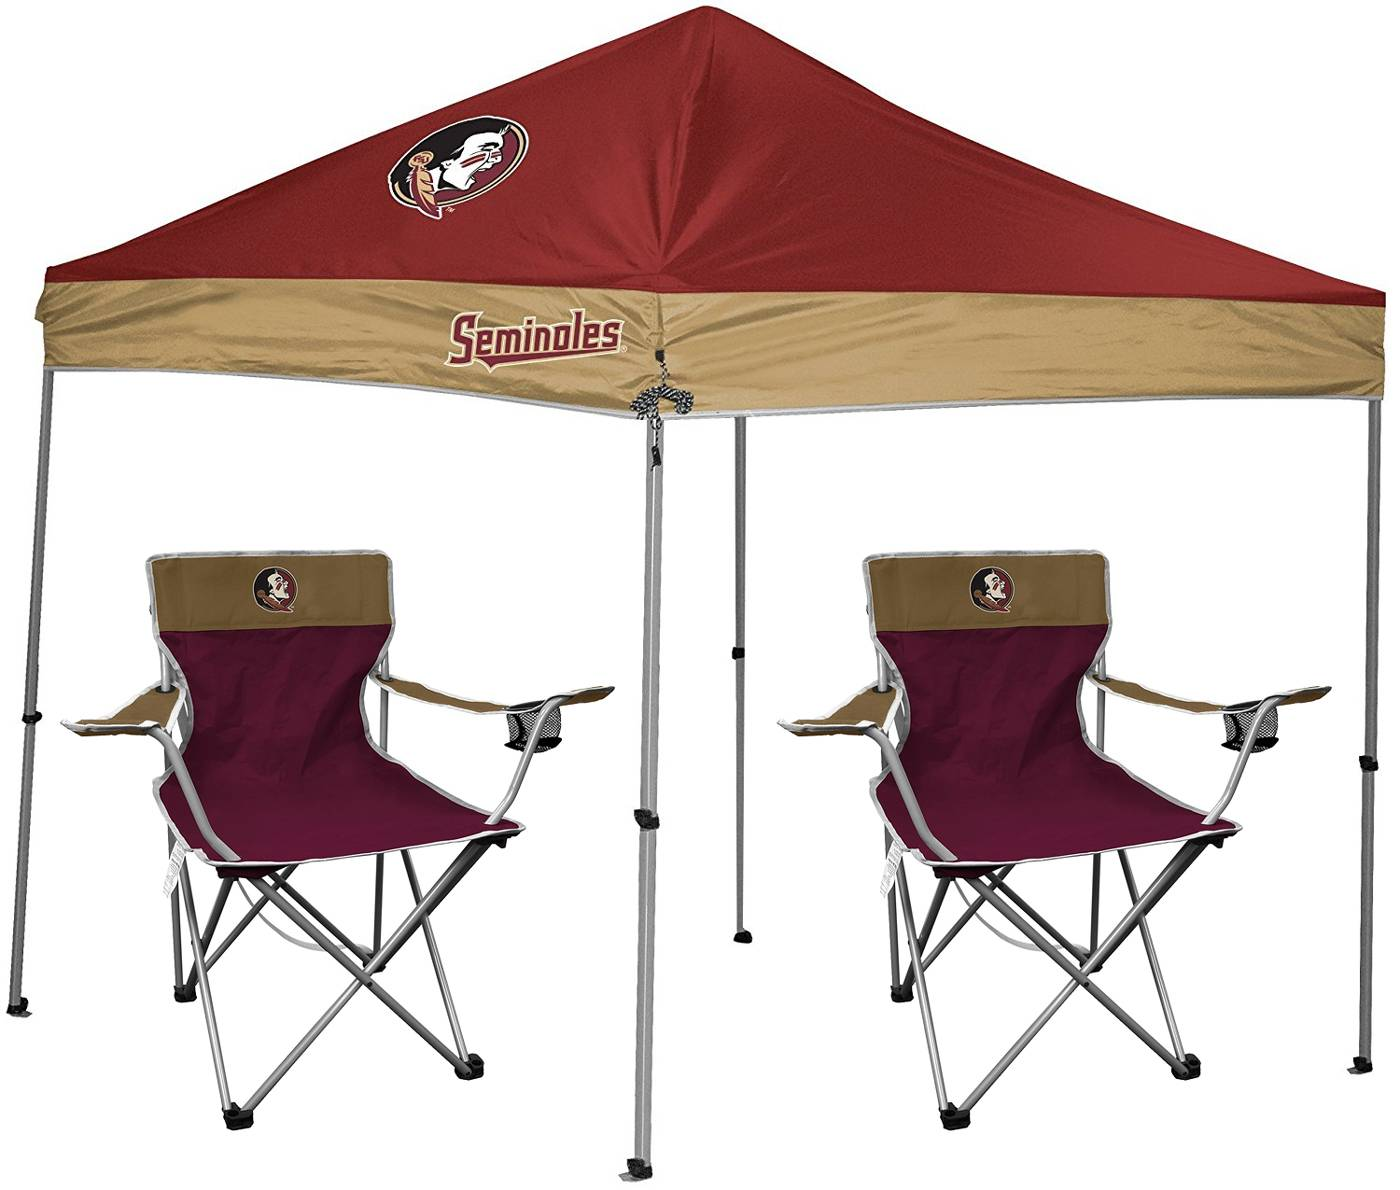 The Florida State Seminoles Rawlings Canopy Tent u0026 Chair Set is the perfect starter set to host your first tailgate! Included in this package is a 9u0027 x 9u0027 ...  sc 1 st  Sports Unlimited & Florida State Seminoles Rawlings Canopy Tent u0026 Chair Set